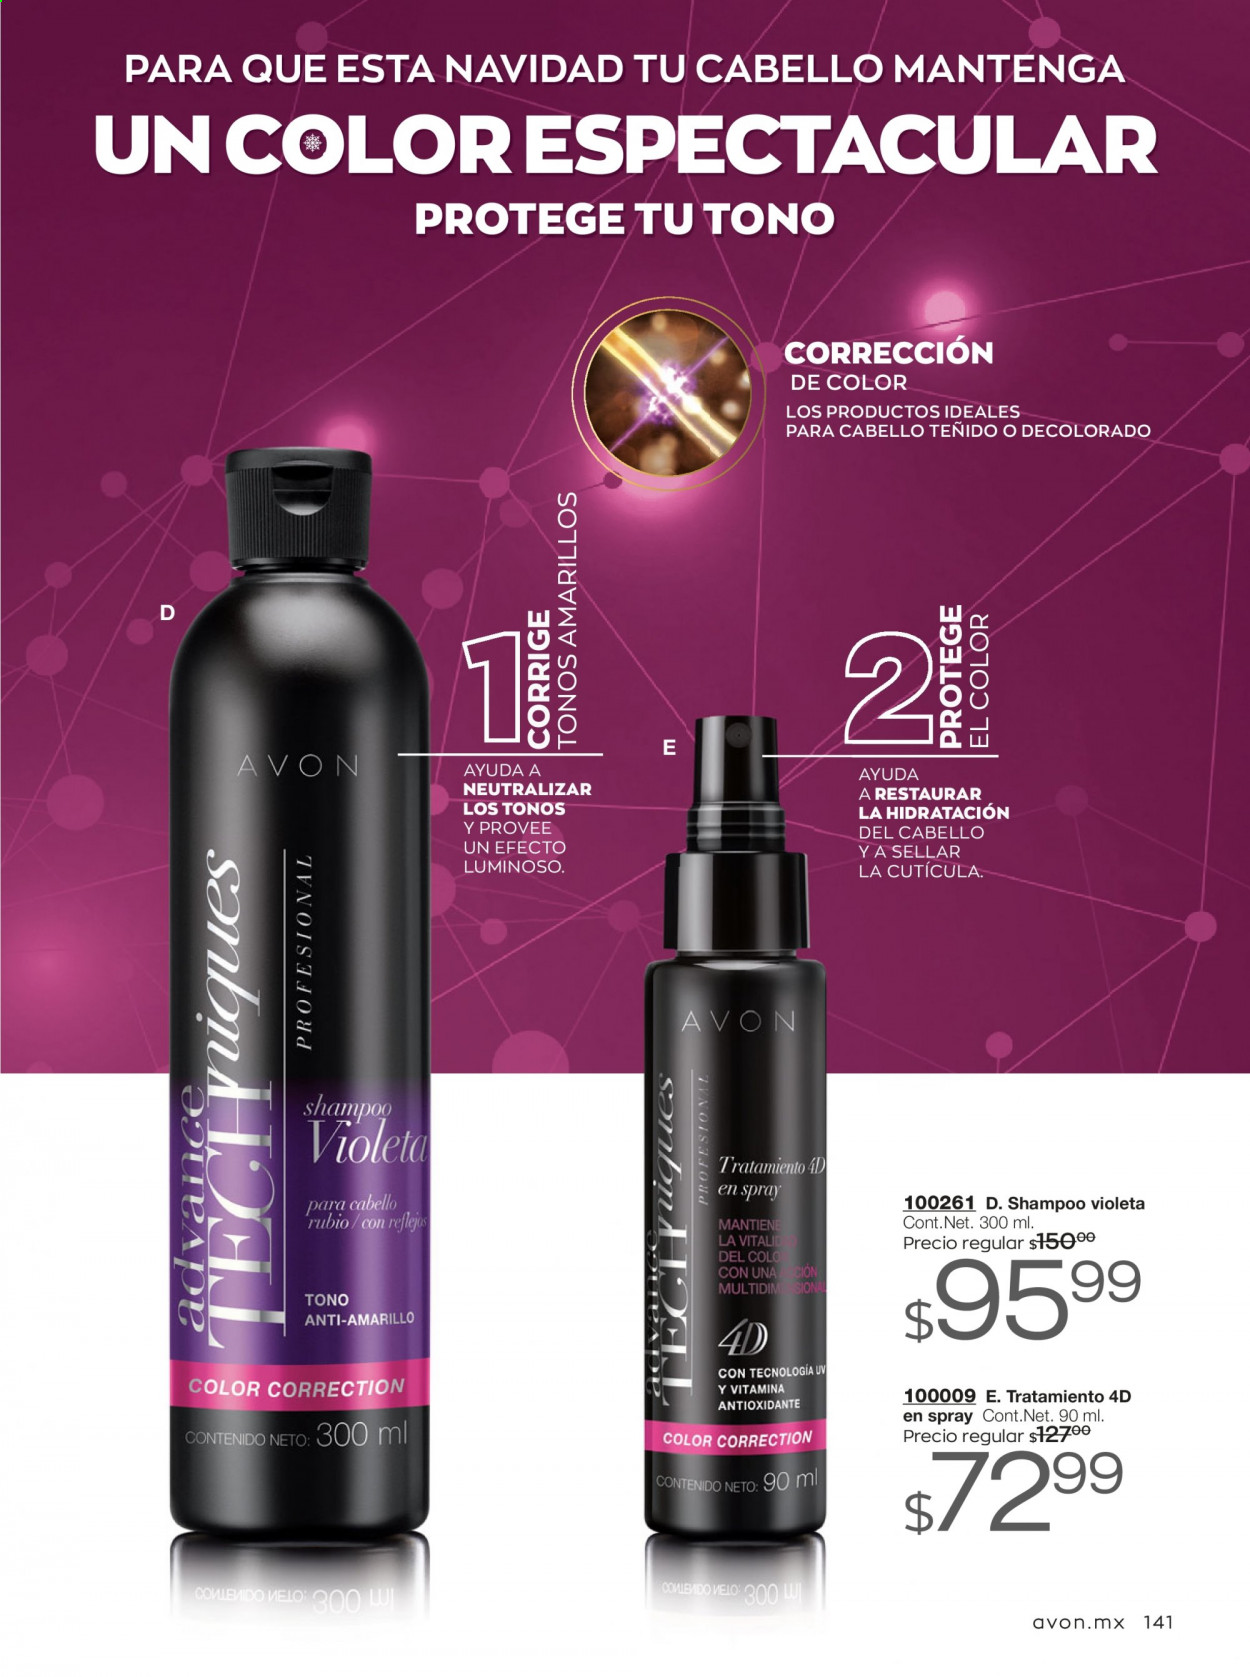 Folleto actual Avon - 7.11.2020 - 9.12.2020 - Ventas - advance, antioxidante, shampoo. Página 141.